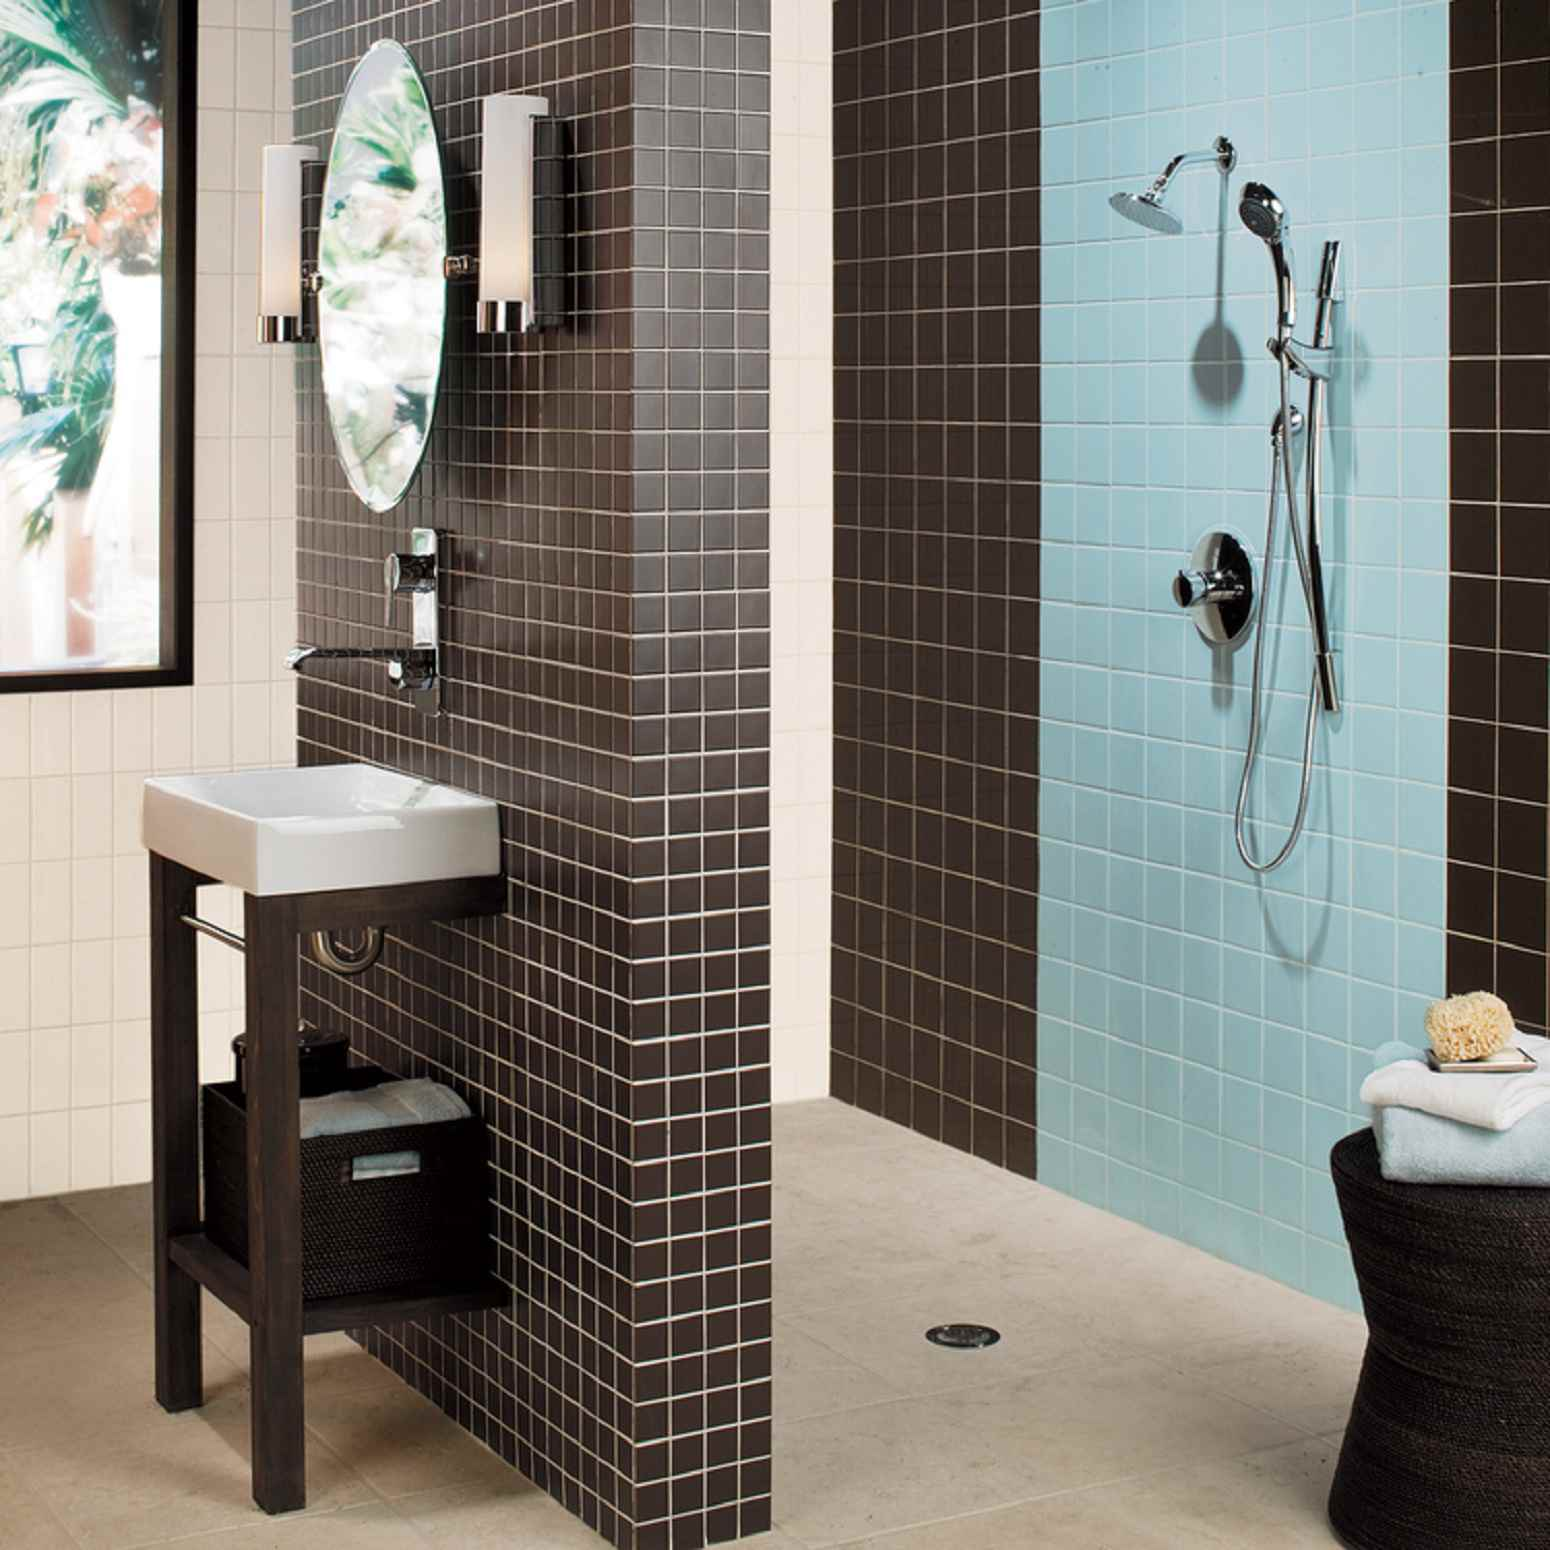 Great Bathroom Tile Ideas - American tile dallas tx